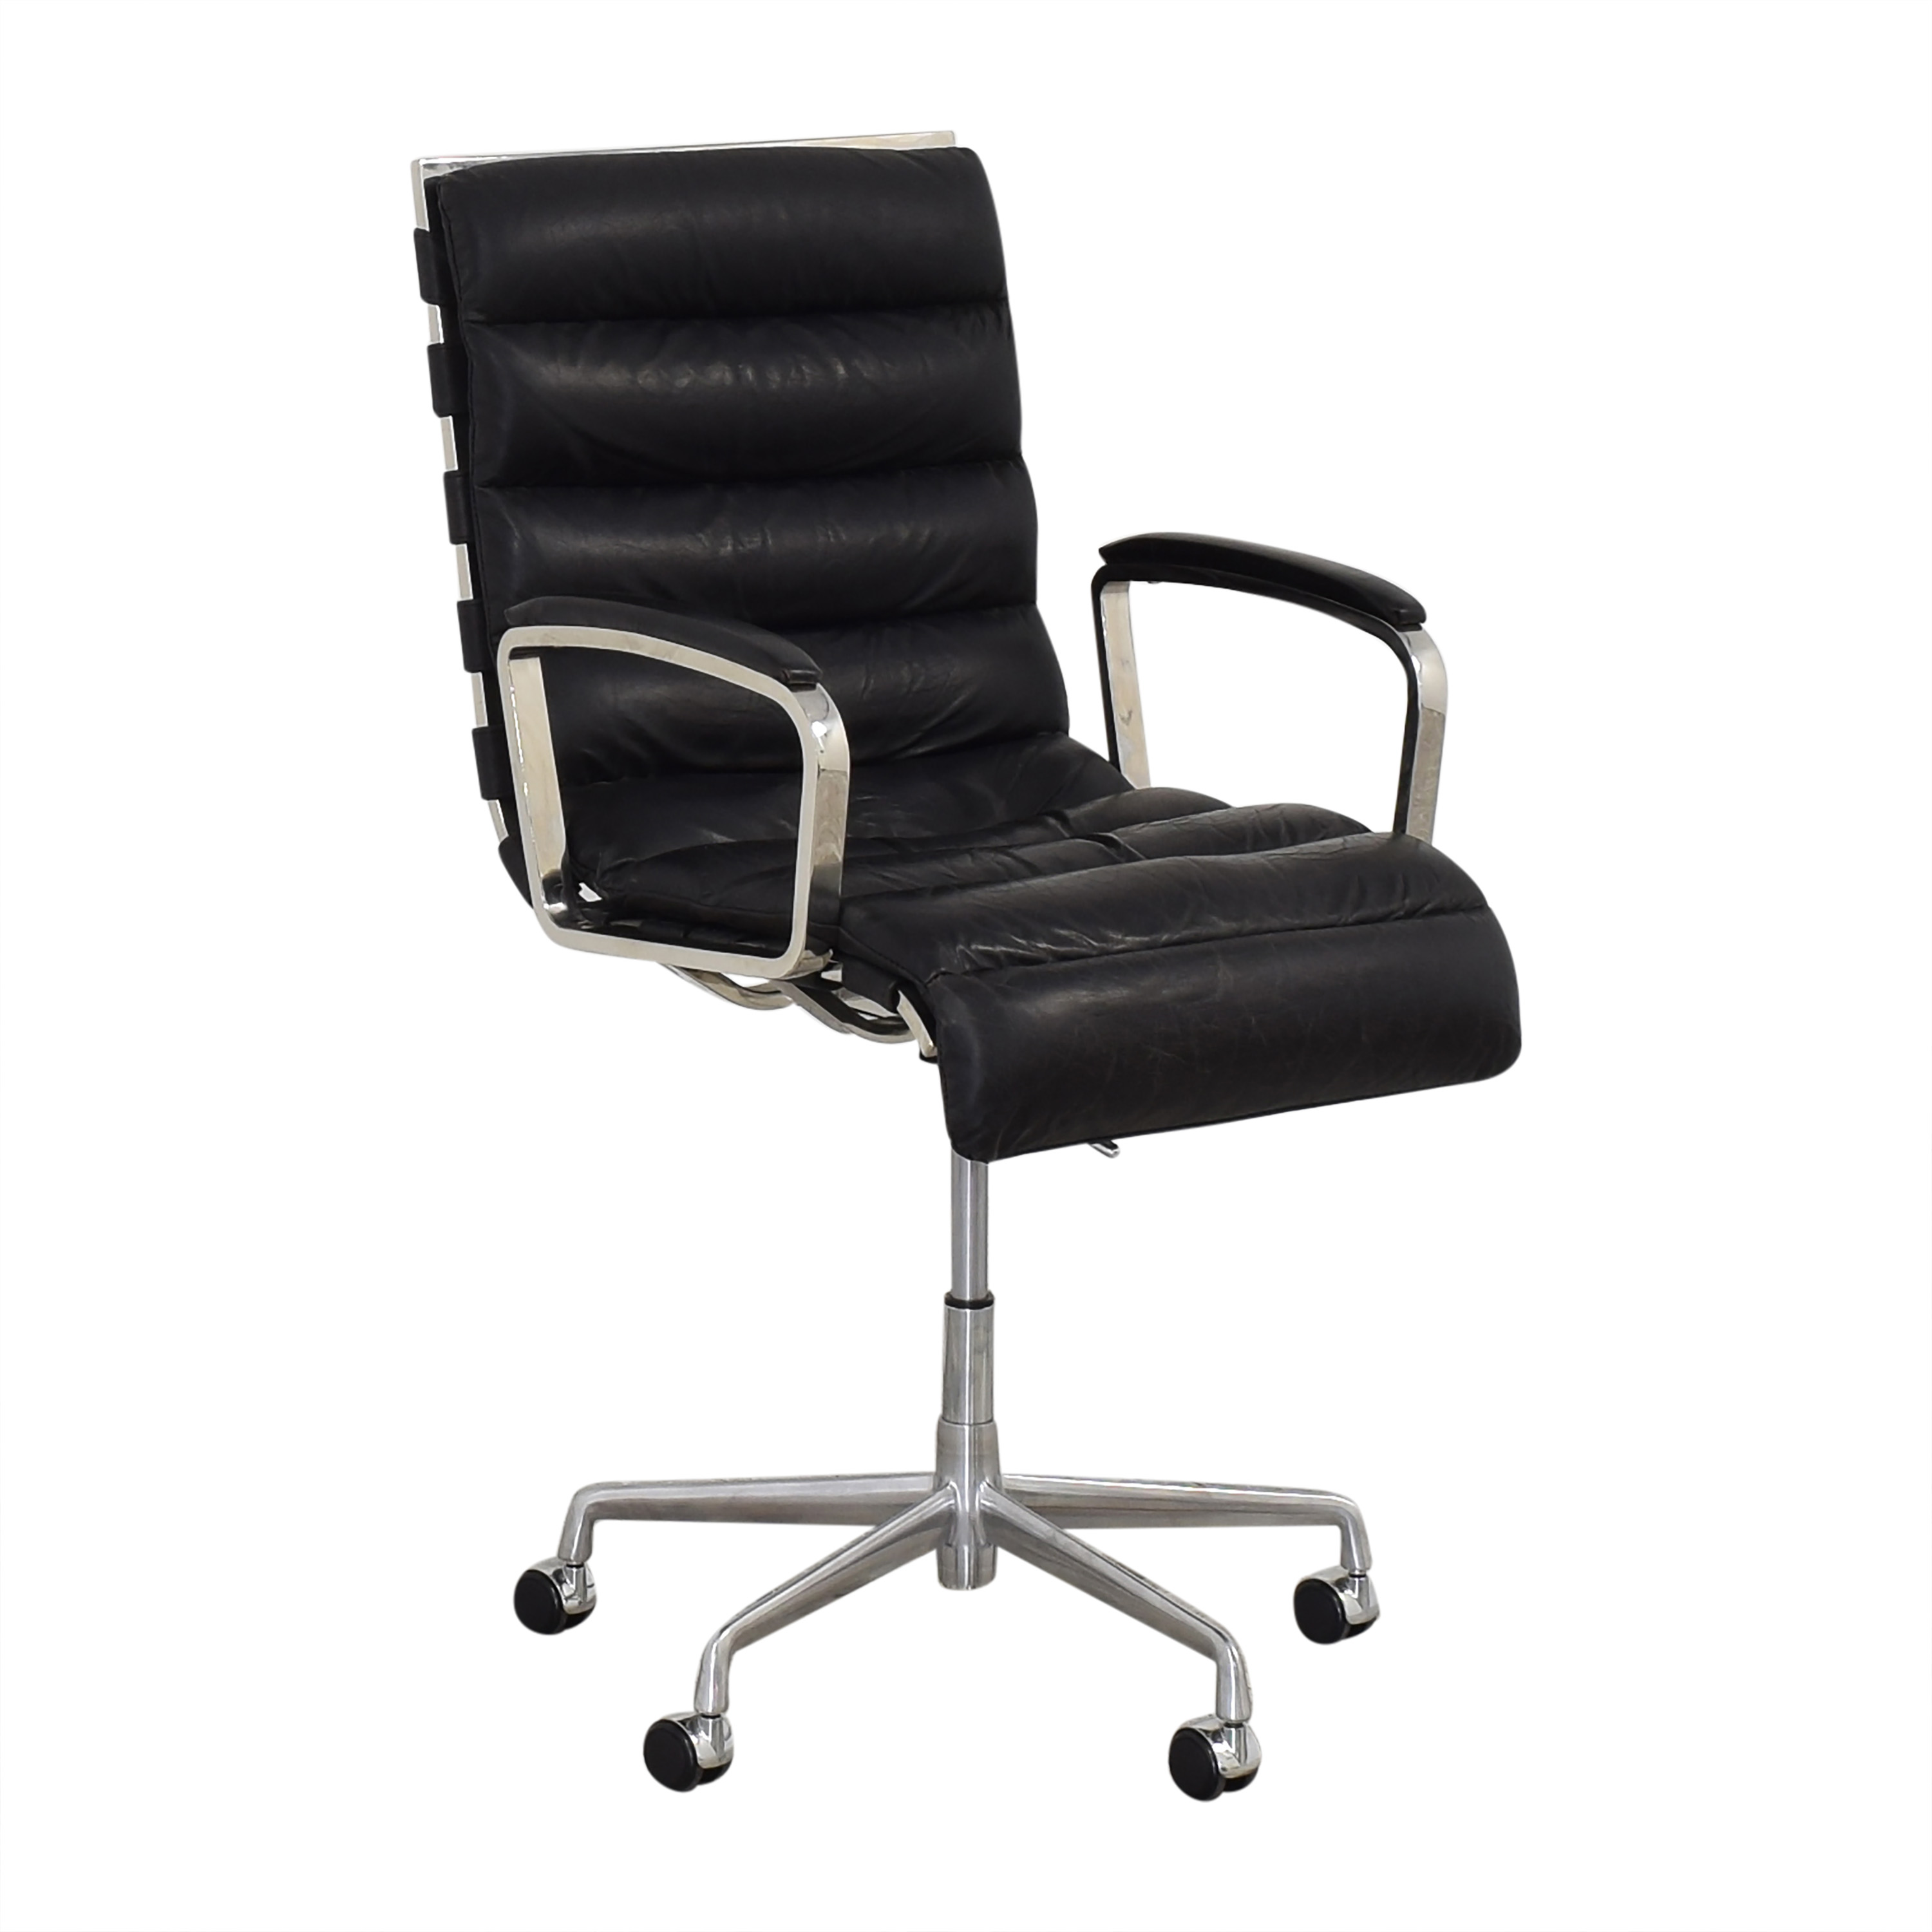 Restoration Hardware Restoration Hardware Oviedo Desk Chair used